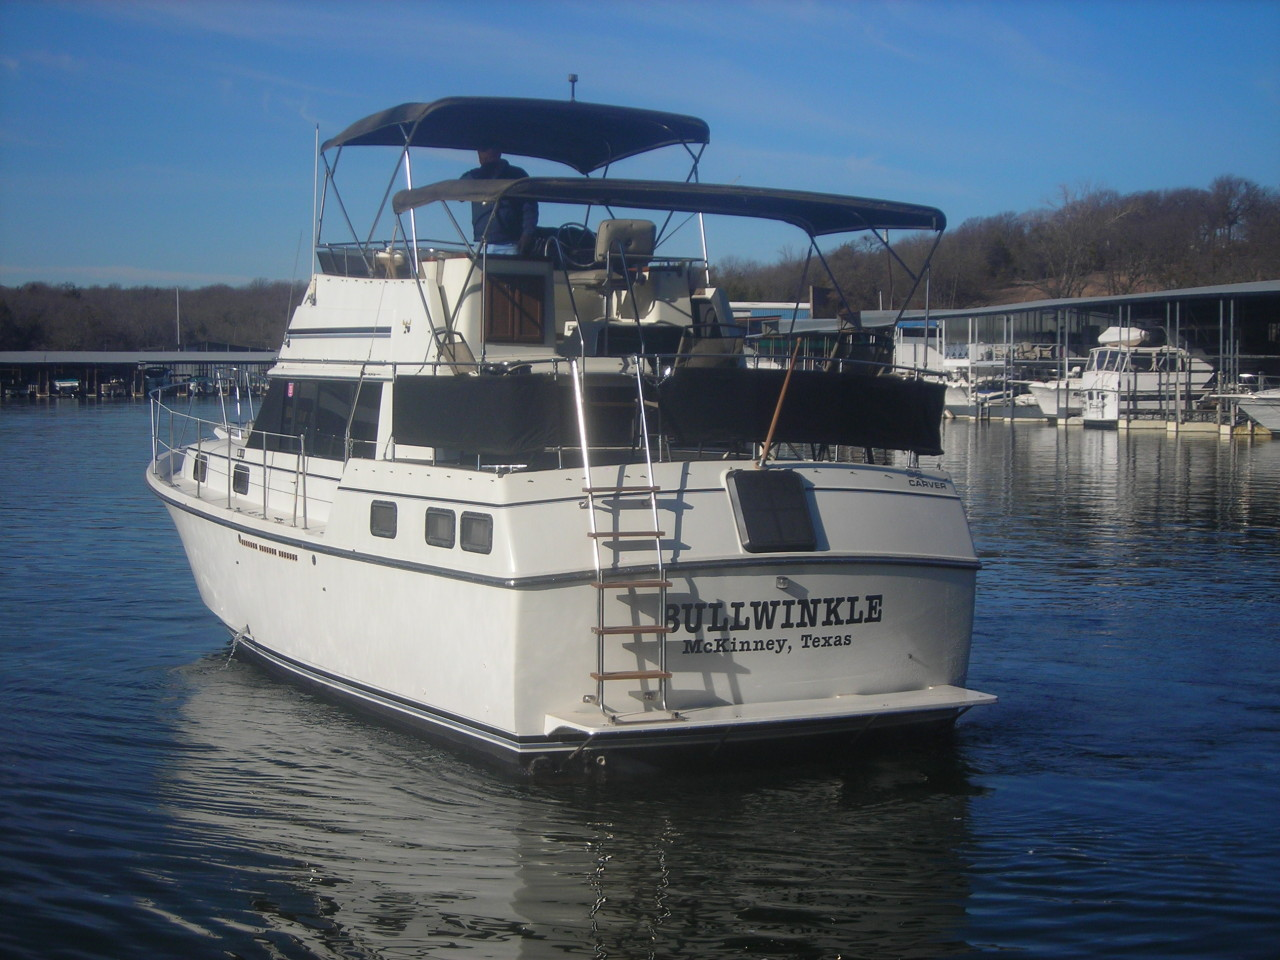 http://eisenhoweryachtclub.com/wp-content/uploads/new-boat-pictures-014.jpg